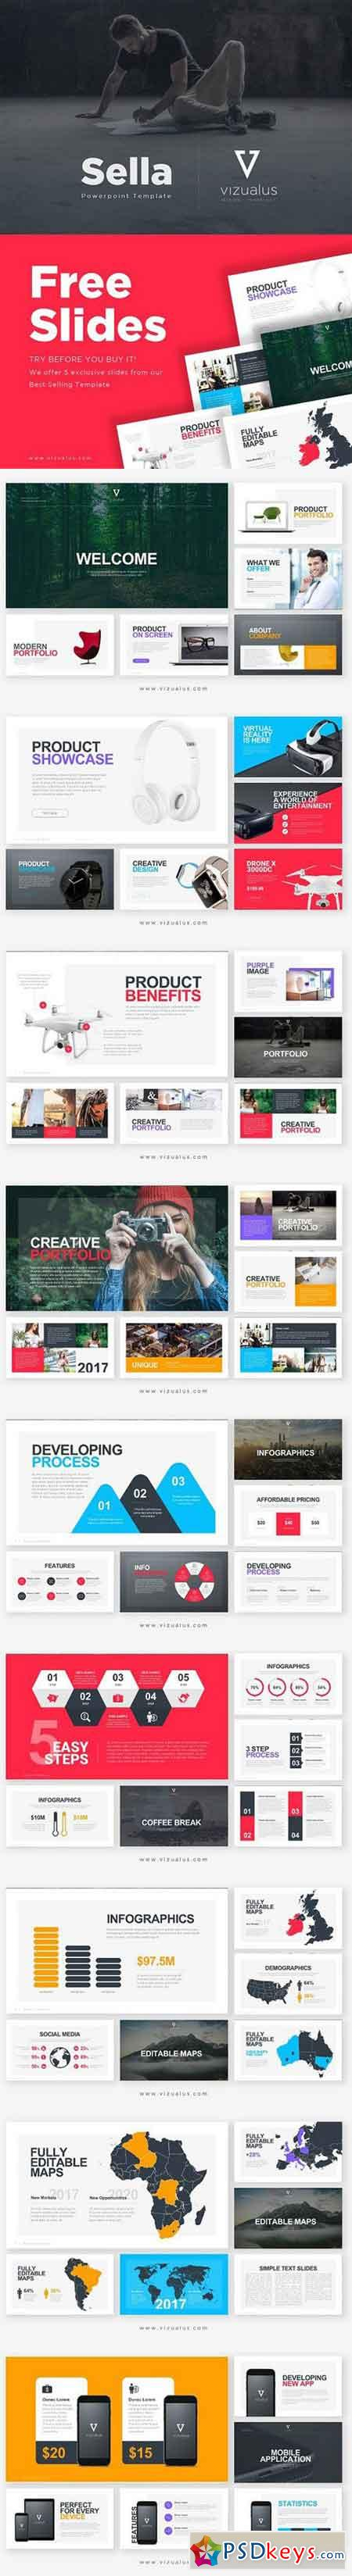 Sella Powerpoint Template + Freebie 909674